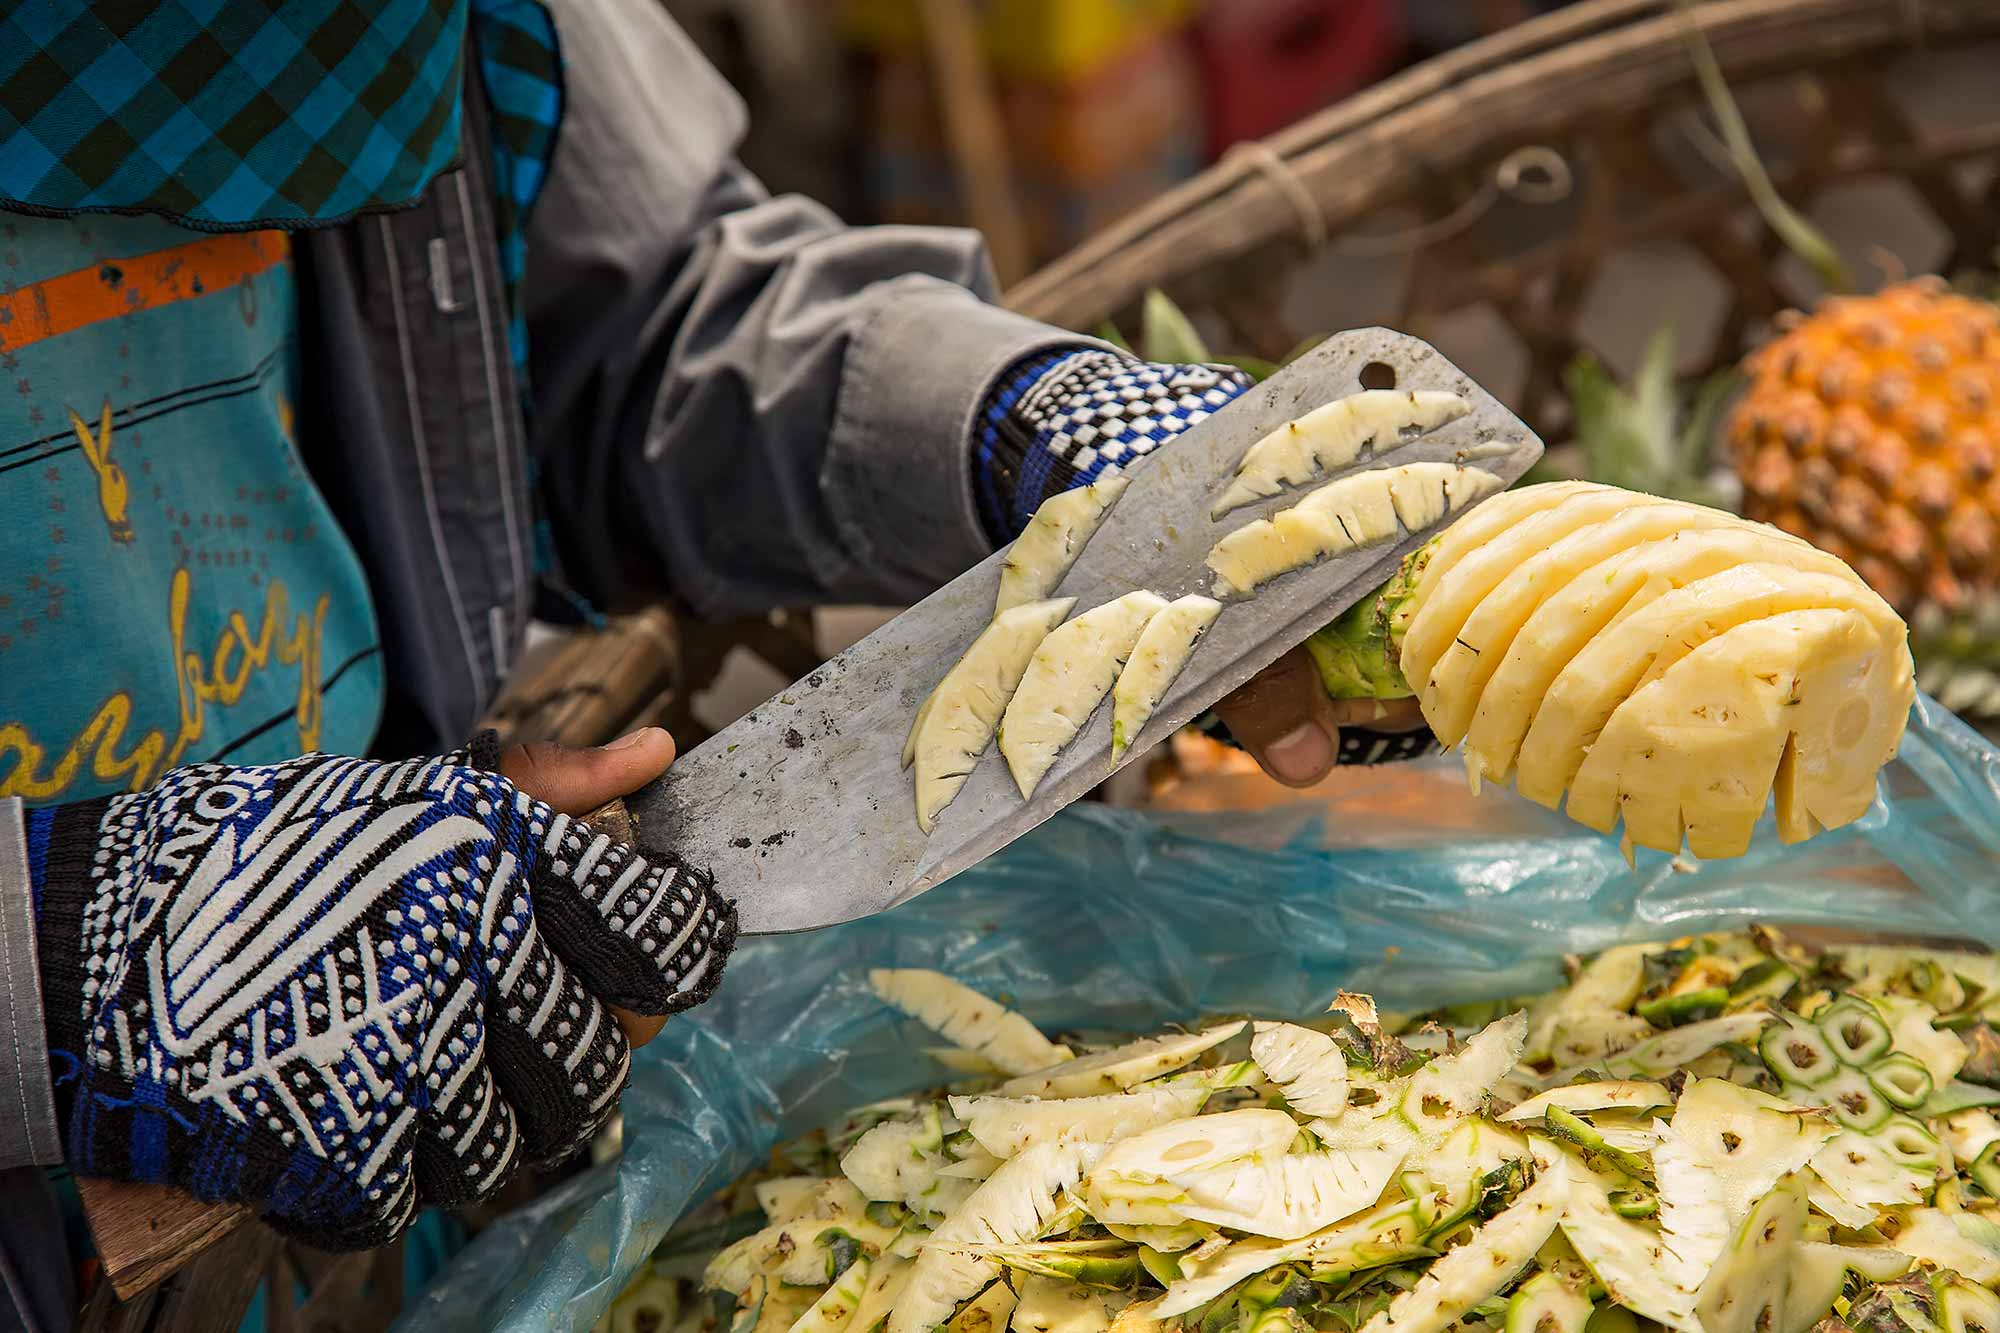 Cutting fresh pineapple at the Russian market in Phnom Penh, Cambodia. © Ulli Maier & Nisa Maier